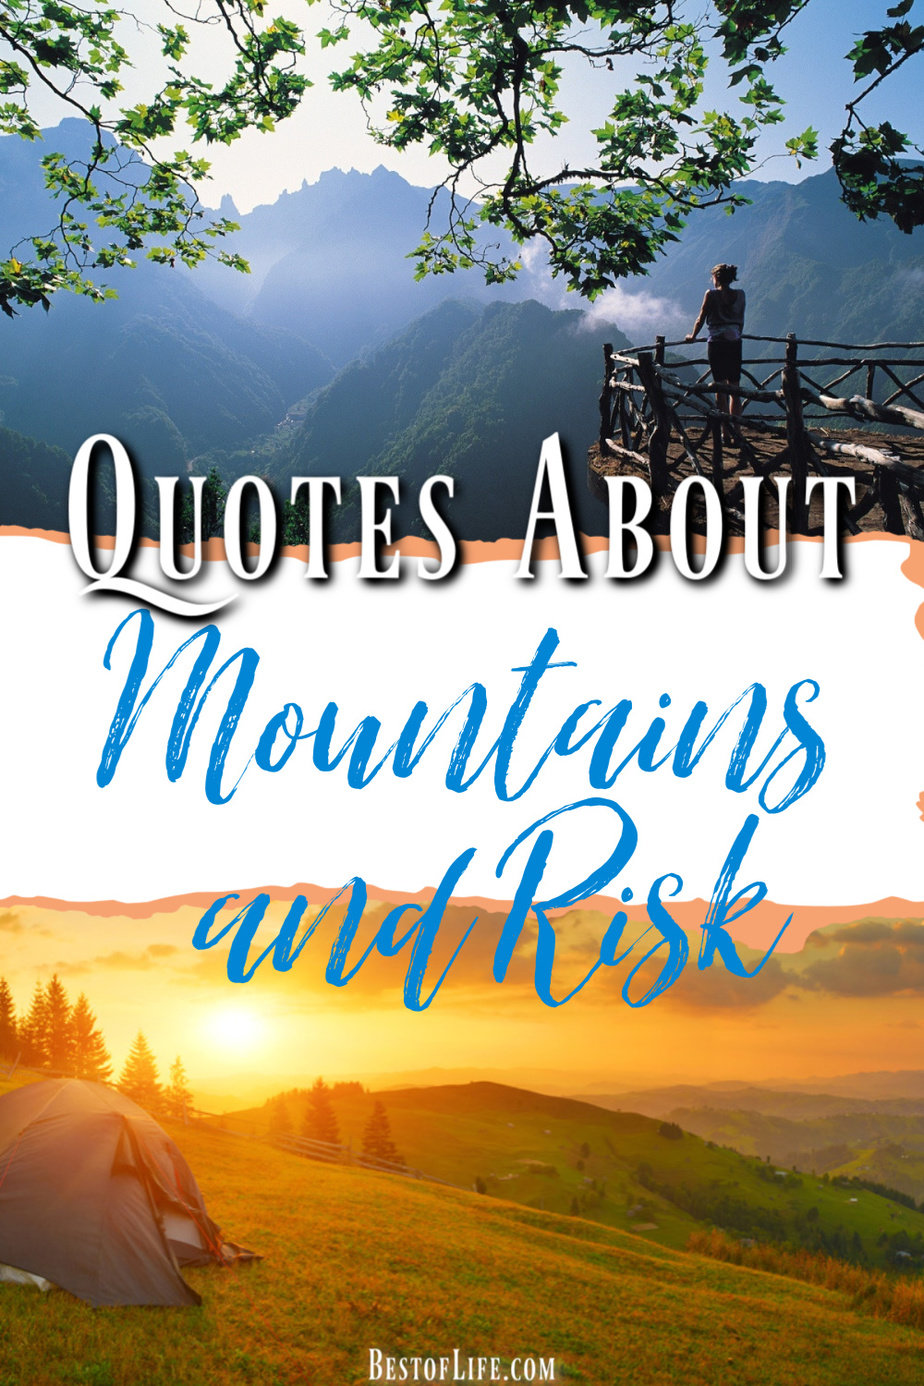 We all have figurative mountains to climb and we could use inspirational quotes about mountains to help us gain the strength to take the risk. Quotes to Inspire | Quotes About Risk and Love | No Regrets Quotes Inspirational | Risk Taking Comfort Zone Quotes | Taking Risks with Love Quotes #quotes #inspirational via @thebestoflife